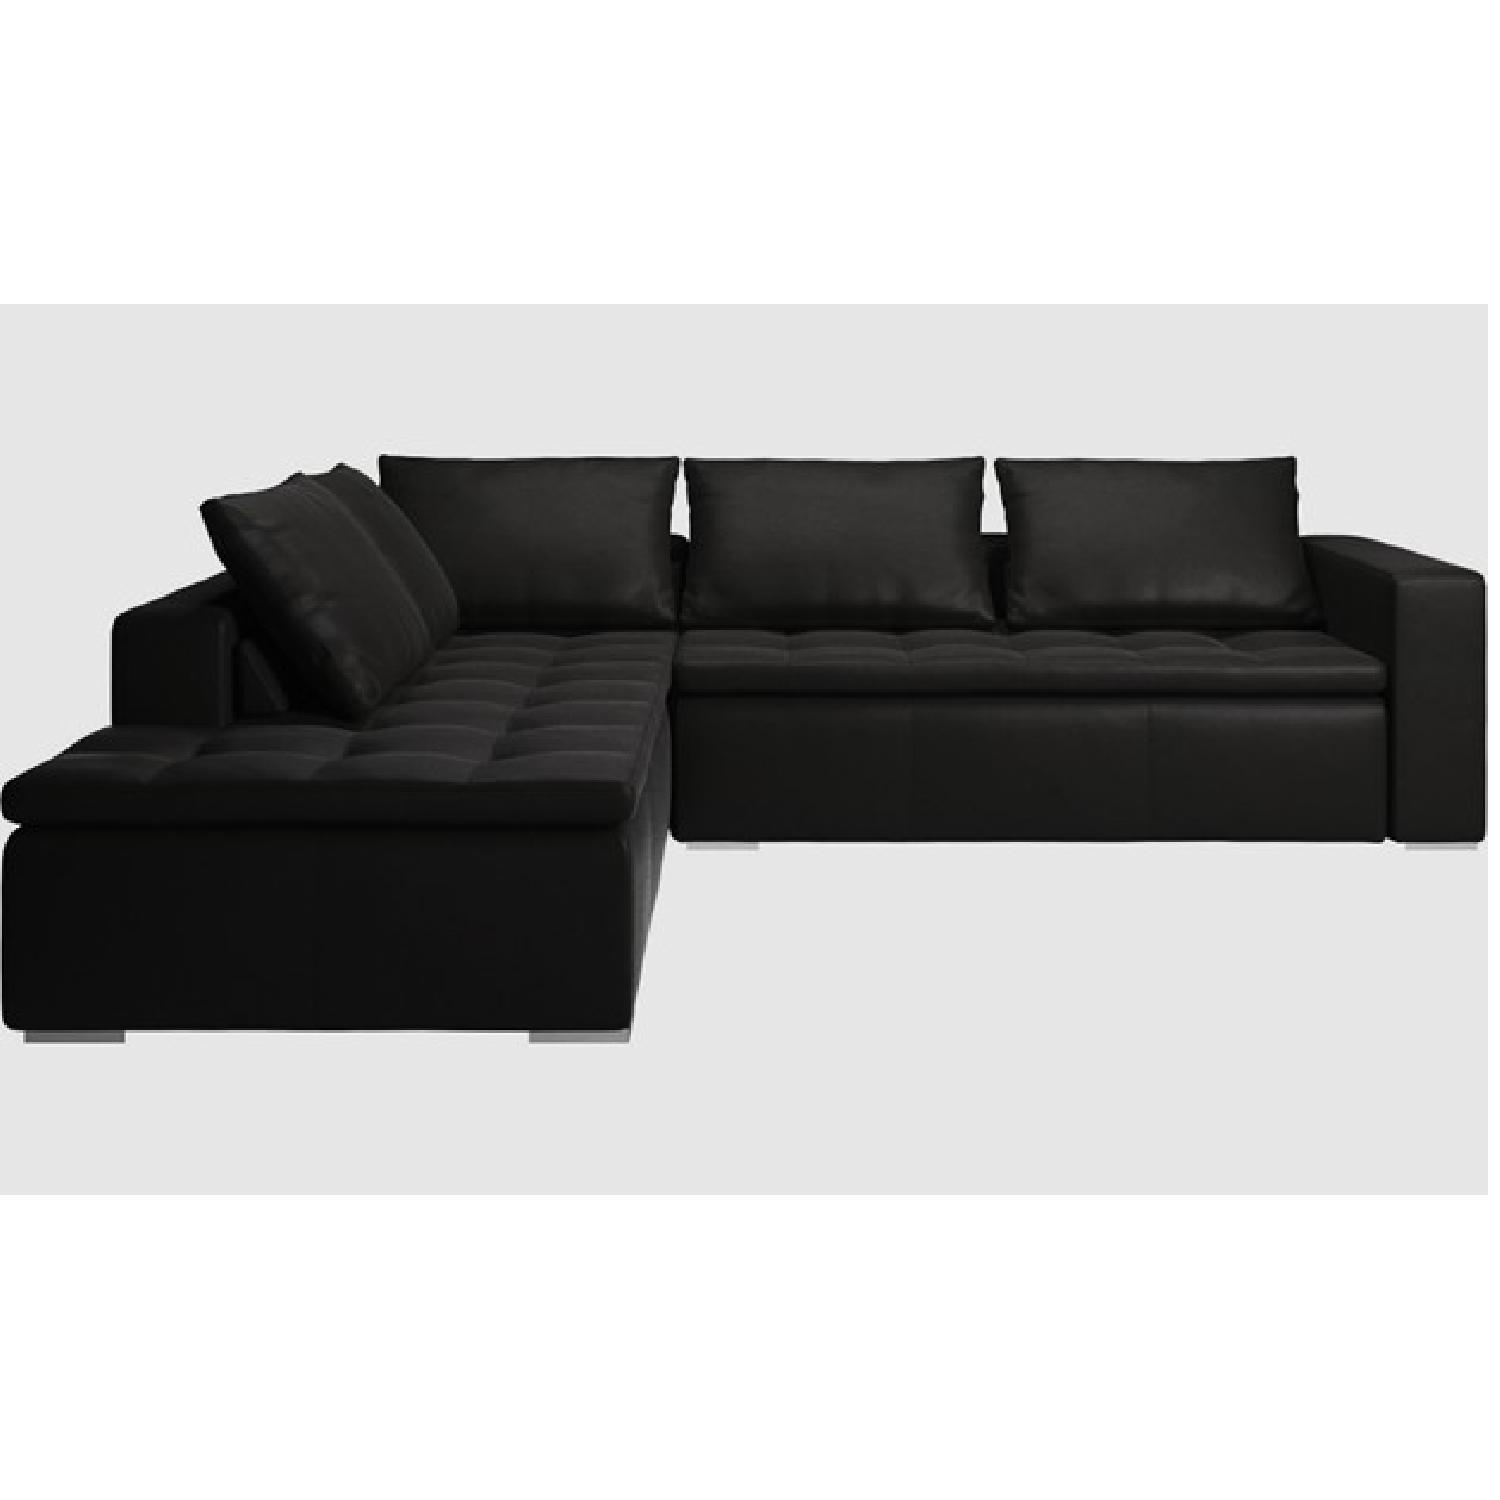 BoConcept Black Mezzo Leather Sectional Couch AptDeco